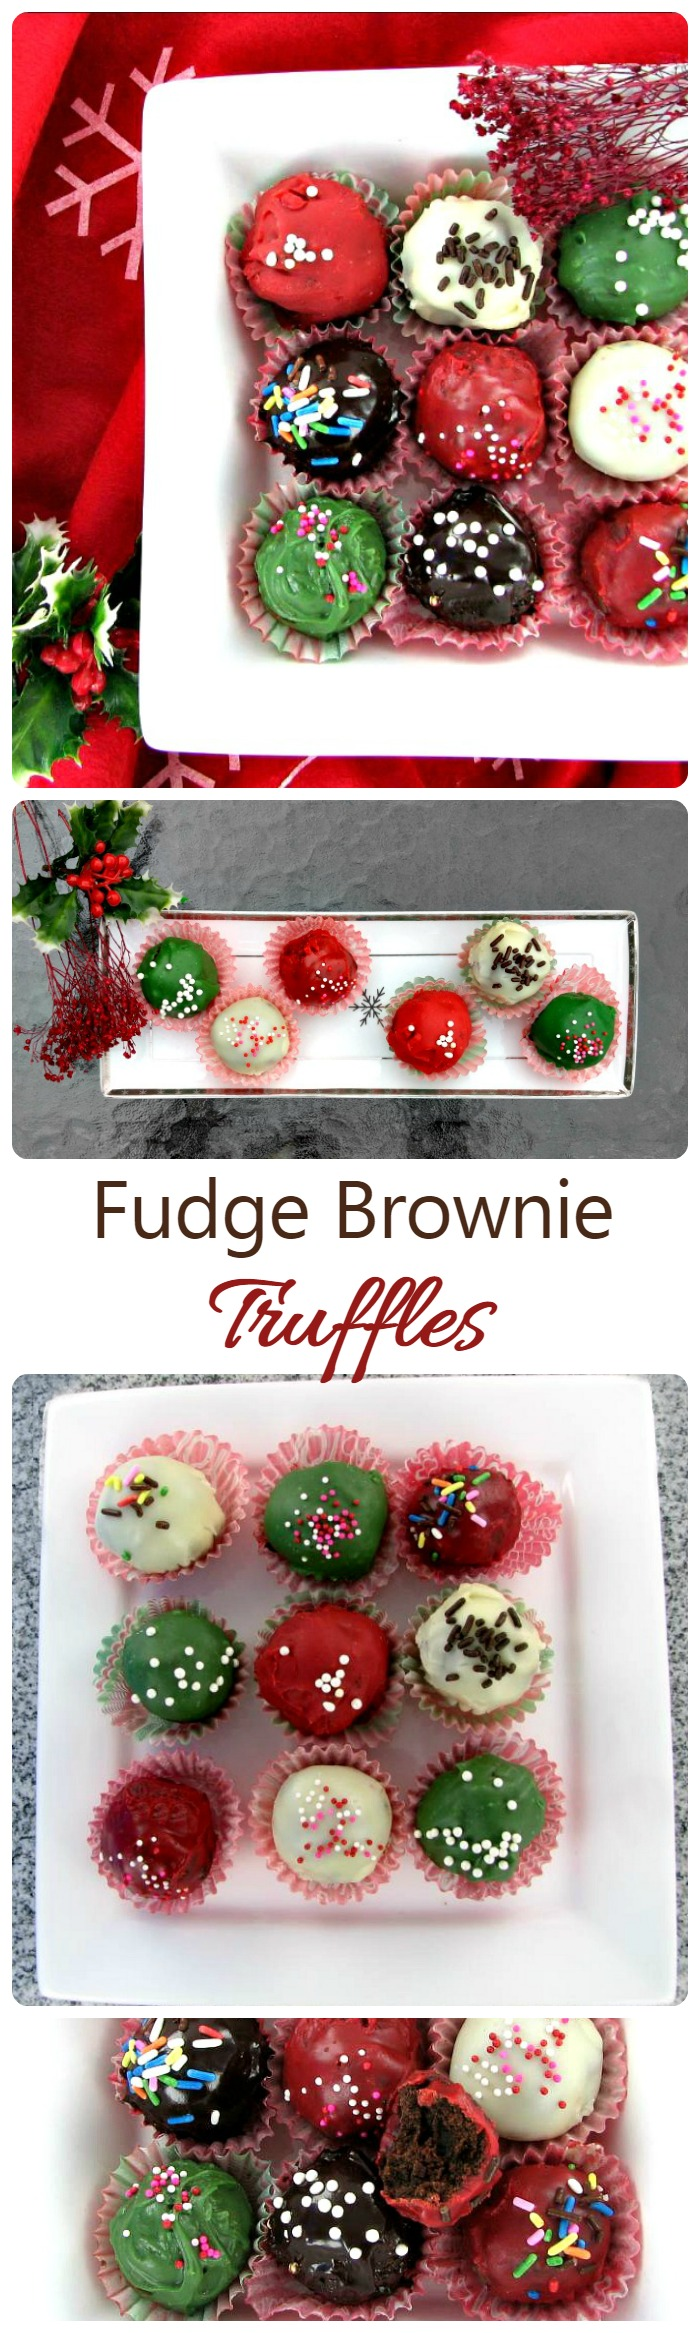 These fudge brownie truffles are such a decadent holiday treat. They are super easy to make and so festive on your party table.